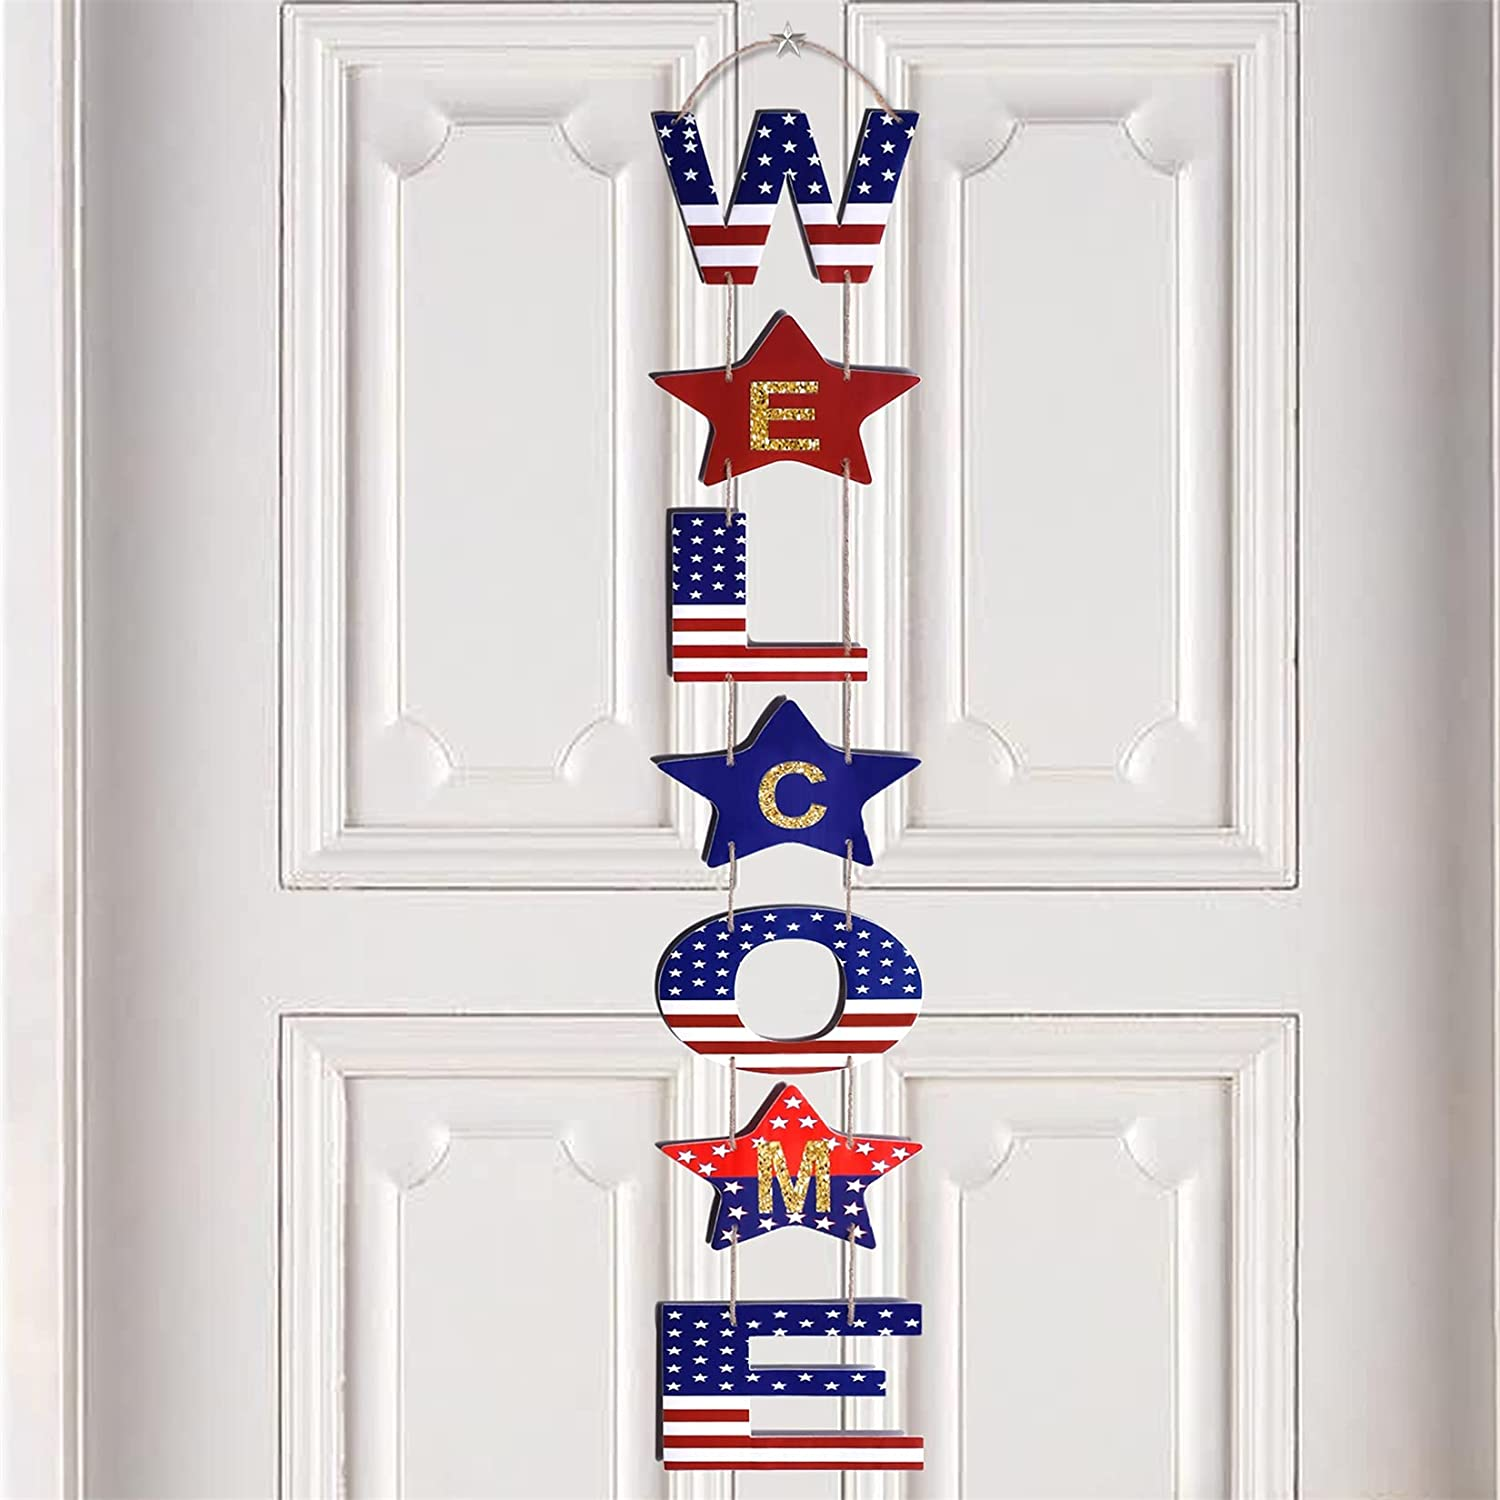 Hocis - DIY Patriotic 4th of July Wreath Decorations Independence Day Hanging Welcome Door Sign with American Flag Element for Memorial Day Labor Day Indoor Outdoor Party Yard Wall Porch Home Décor